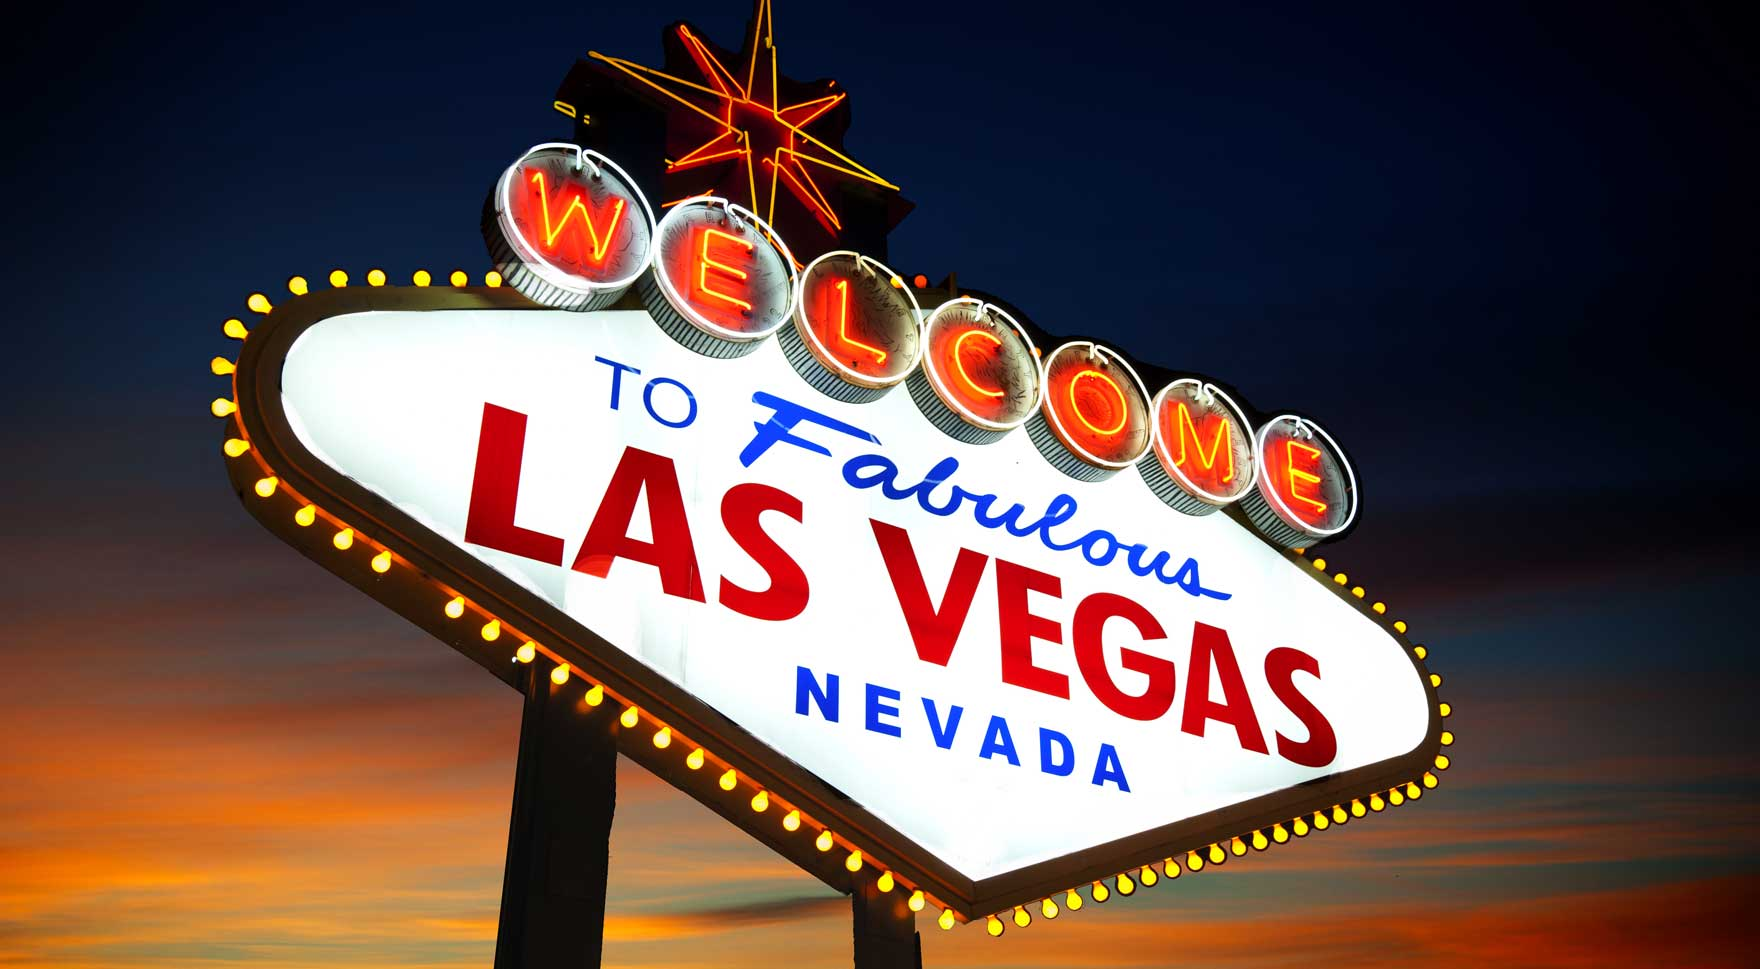 7 Things to Do in Las Vegas That Aren't a Gamble